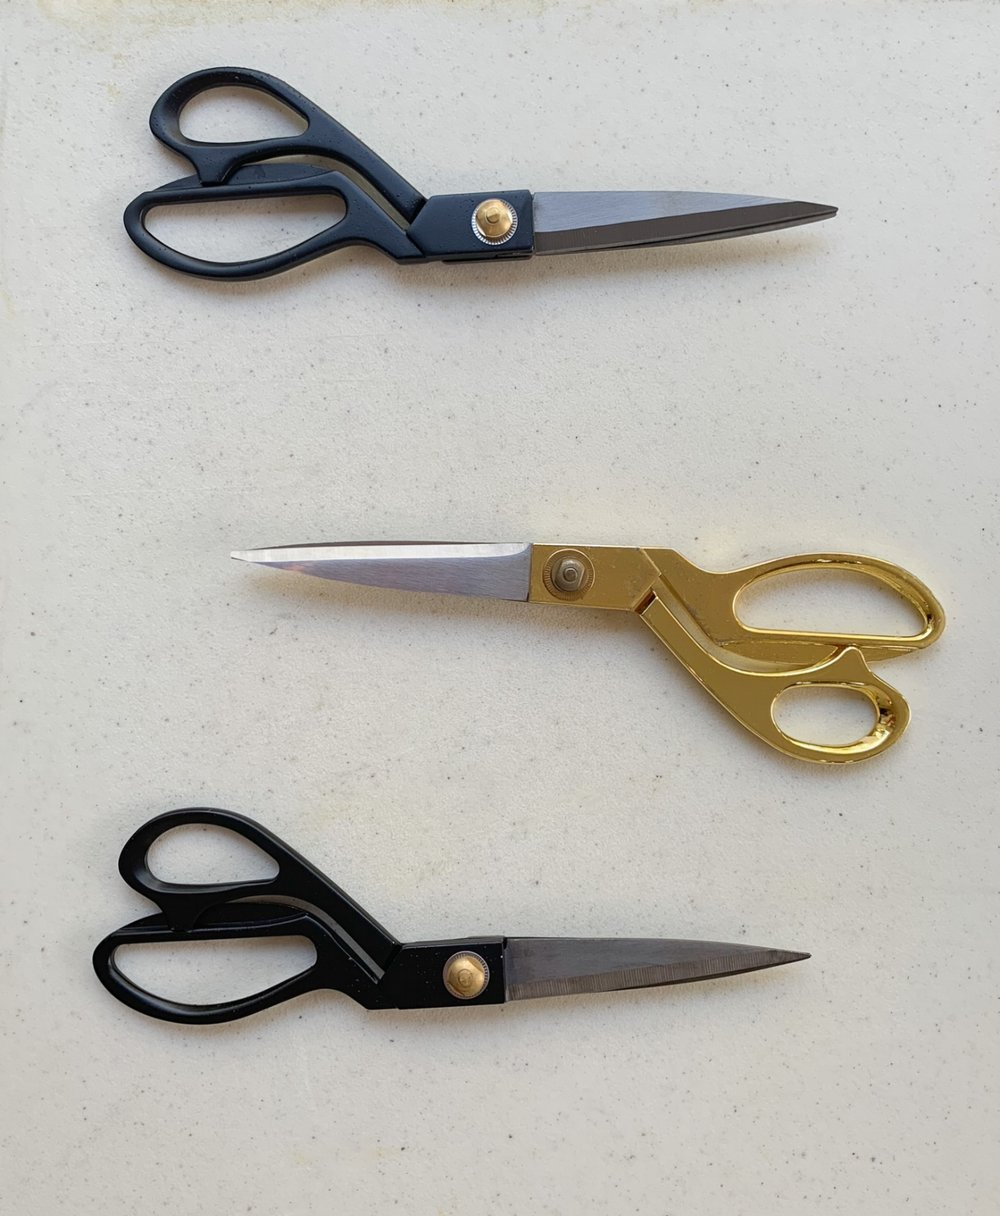 Sharp Kitchen Scissors